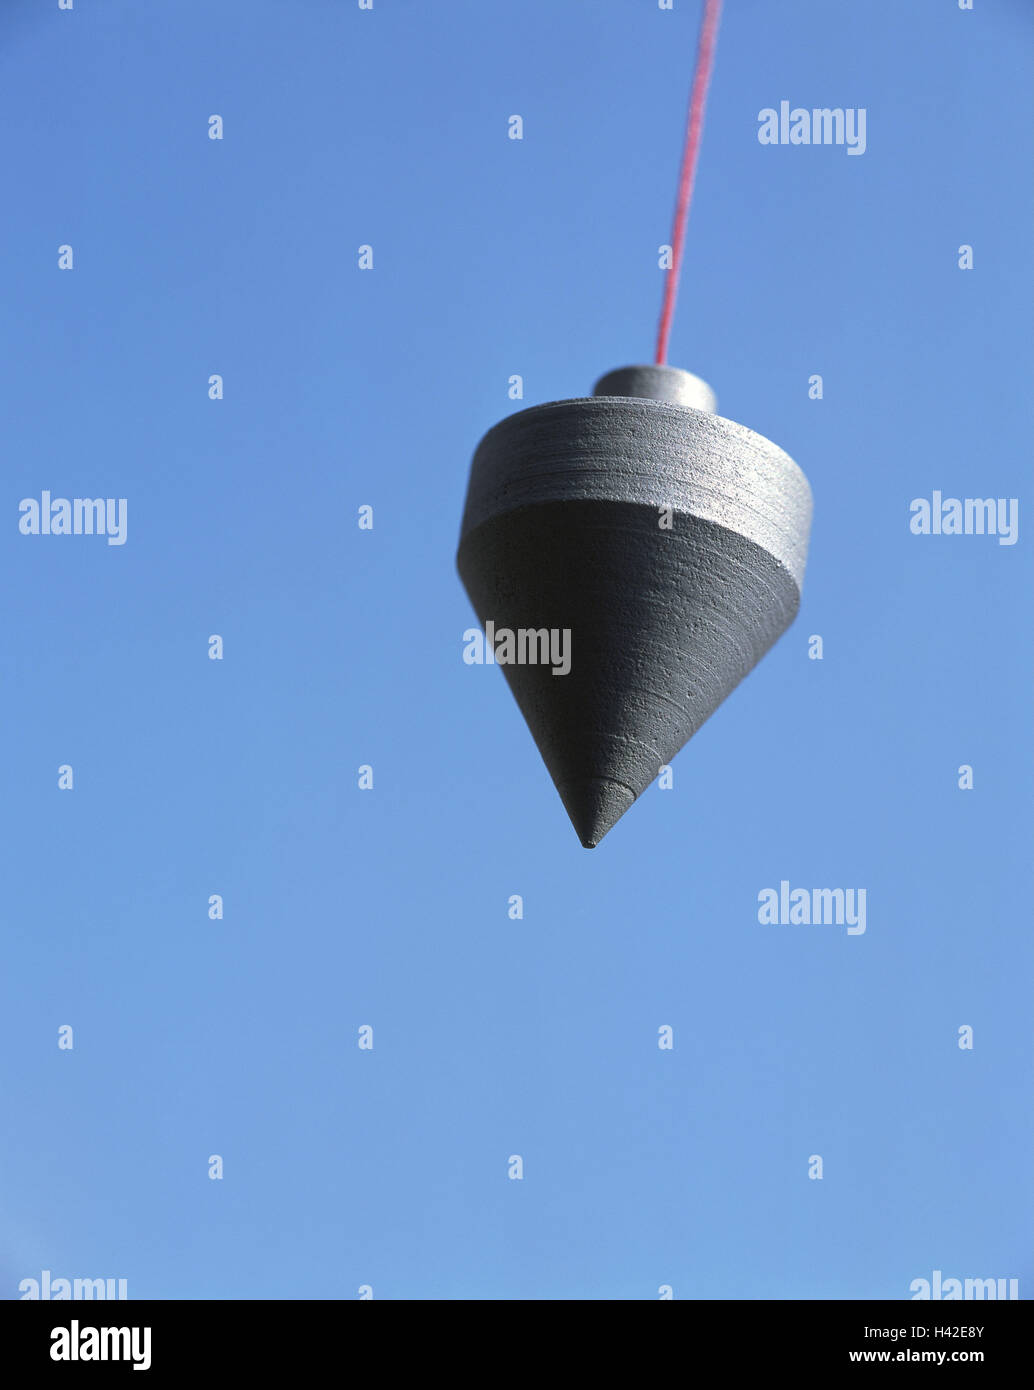 Plumb line, icon, building of a house, construction, planning, measure, build, metrology, tools, statics, perpendicular, Stock Photo